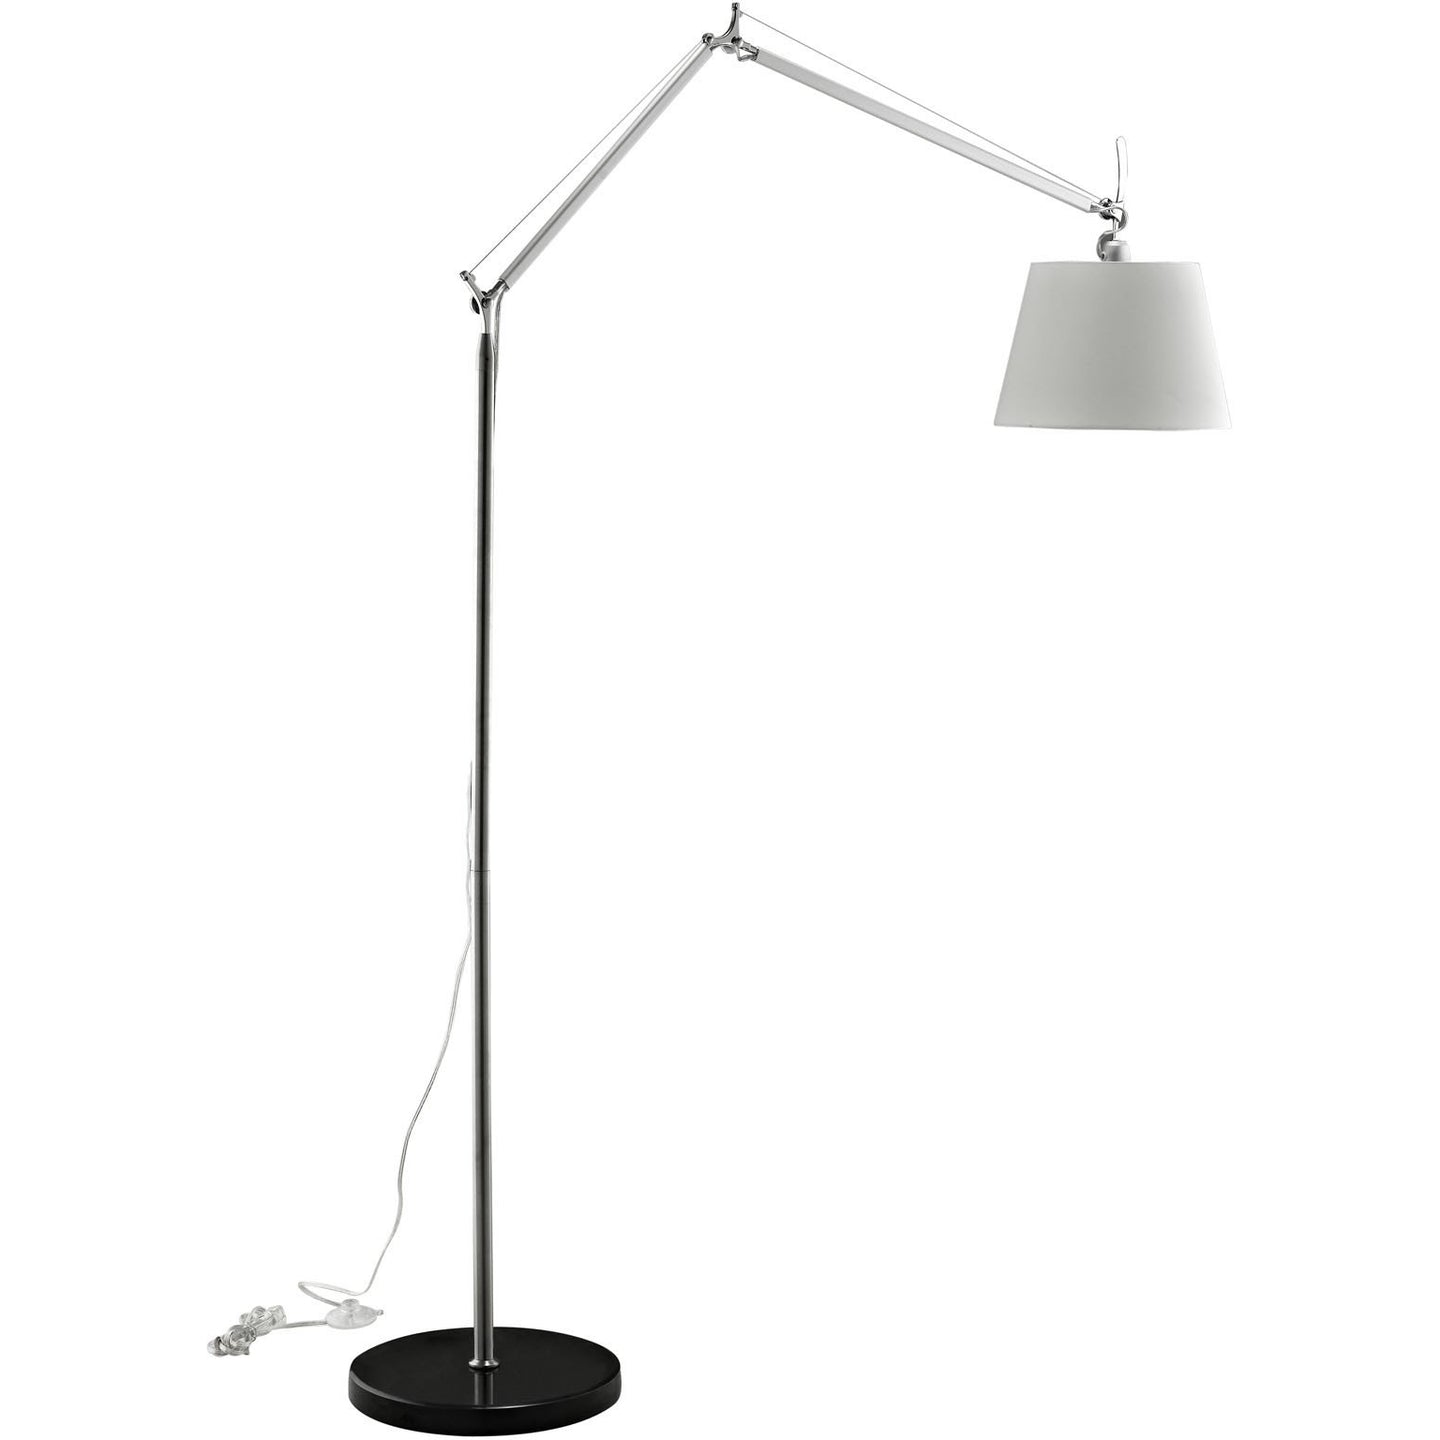 Modway Furniture Reflect Aluminum Floor Lamp EEI-1217-Minimal & Modern